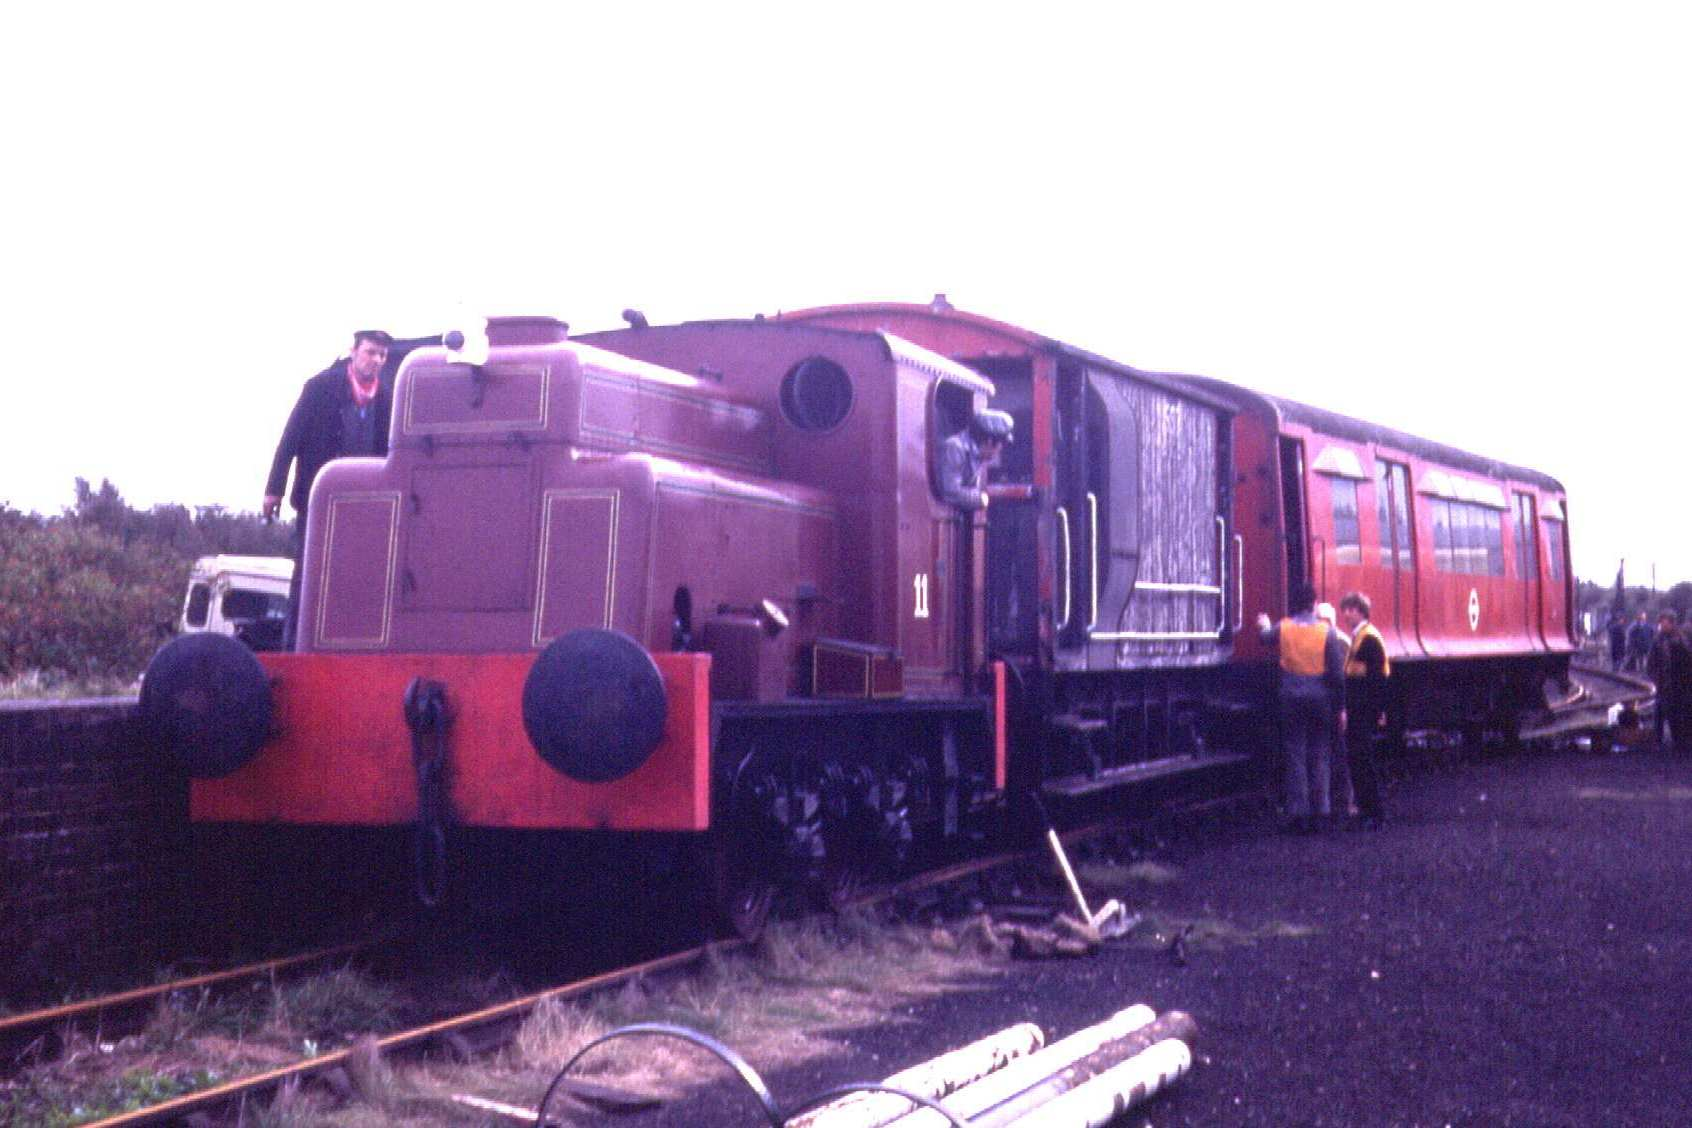 No. 11 recovering the London Underground car from the main line - 10th October 1981